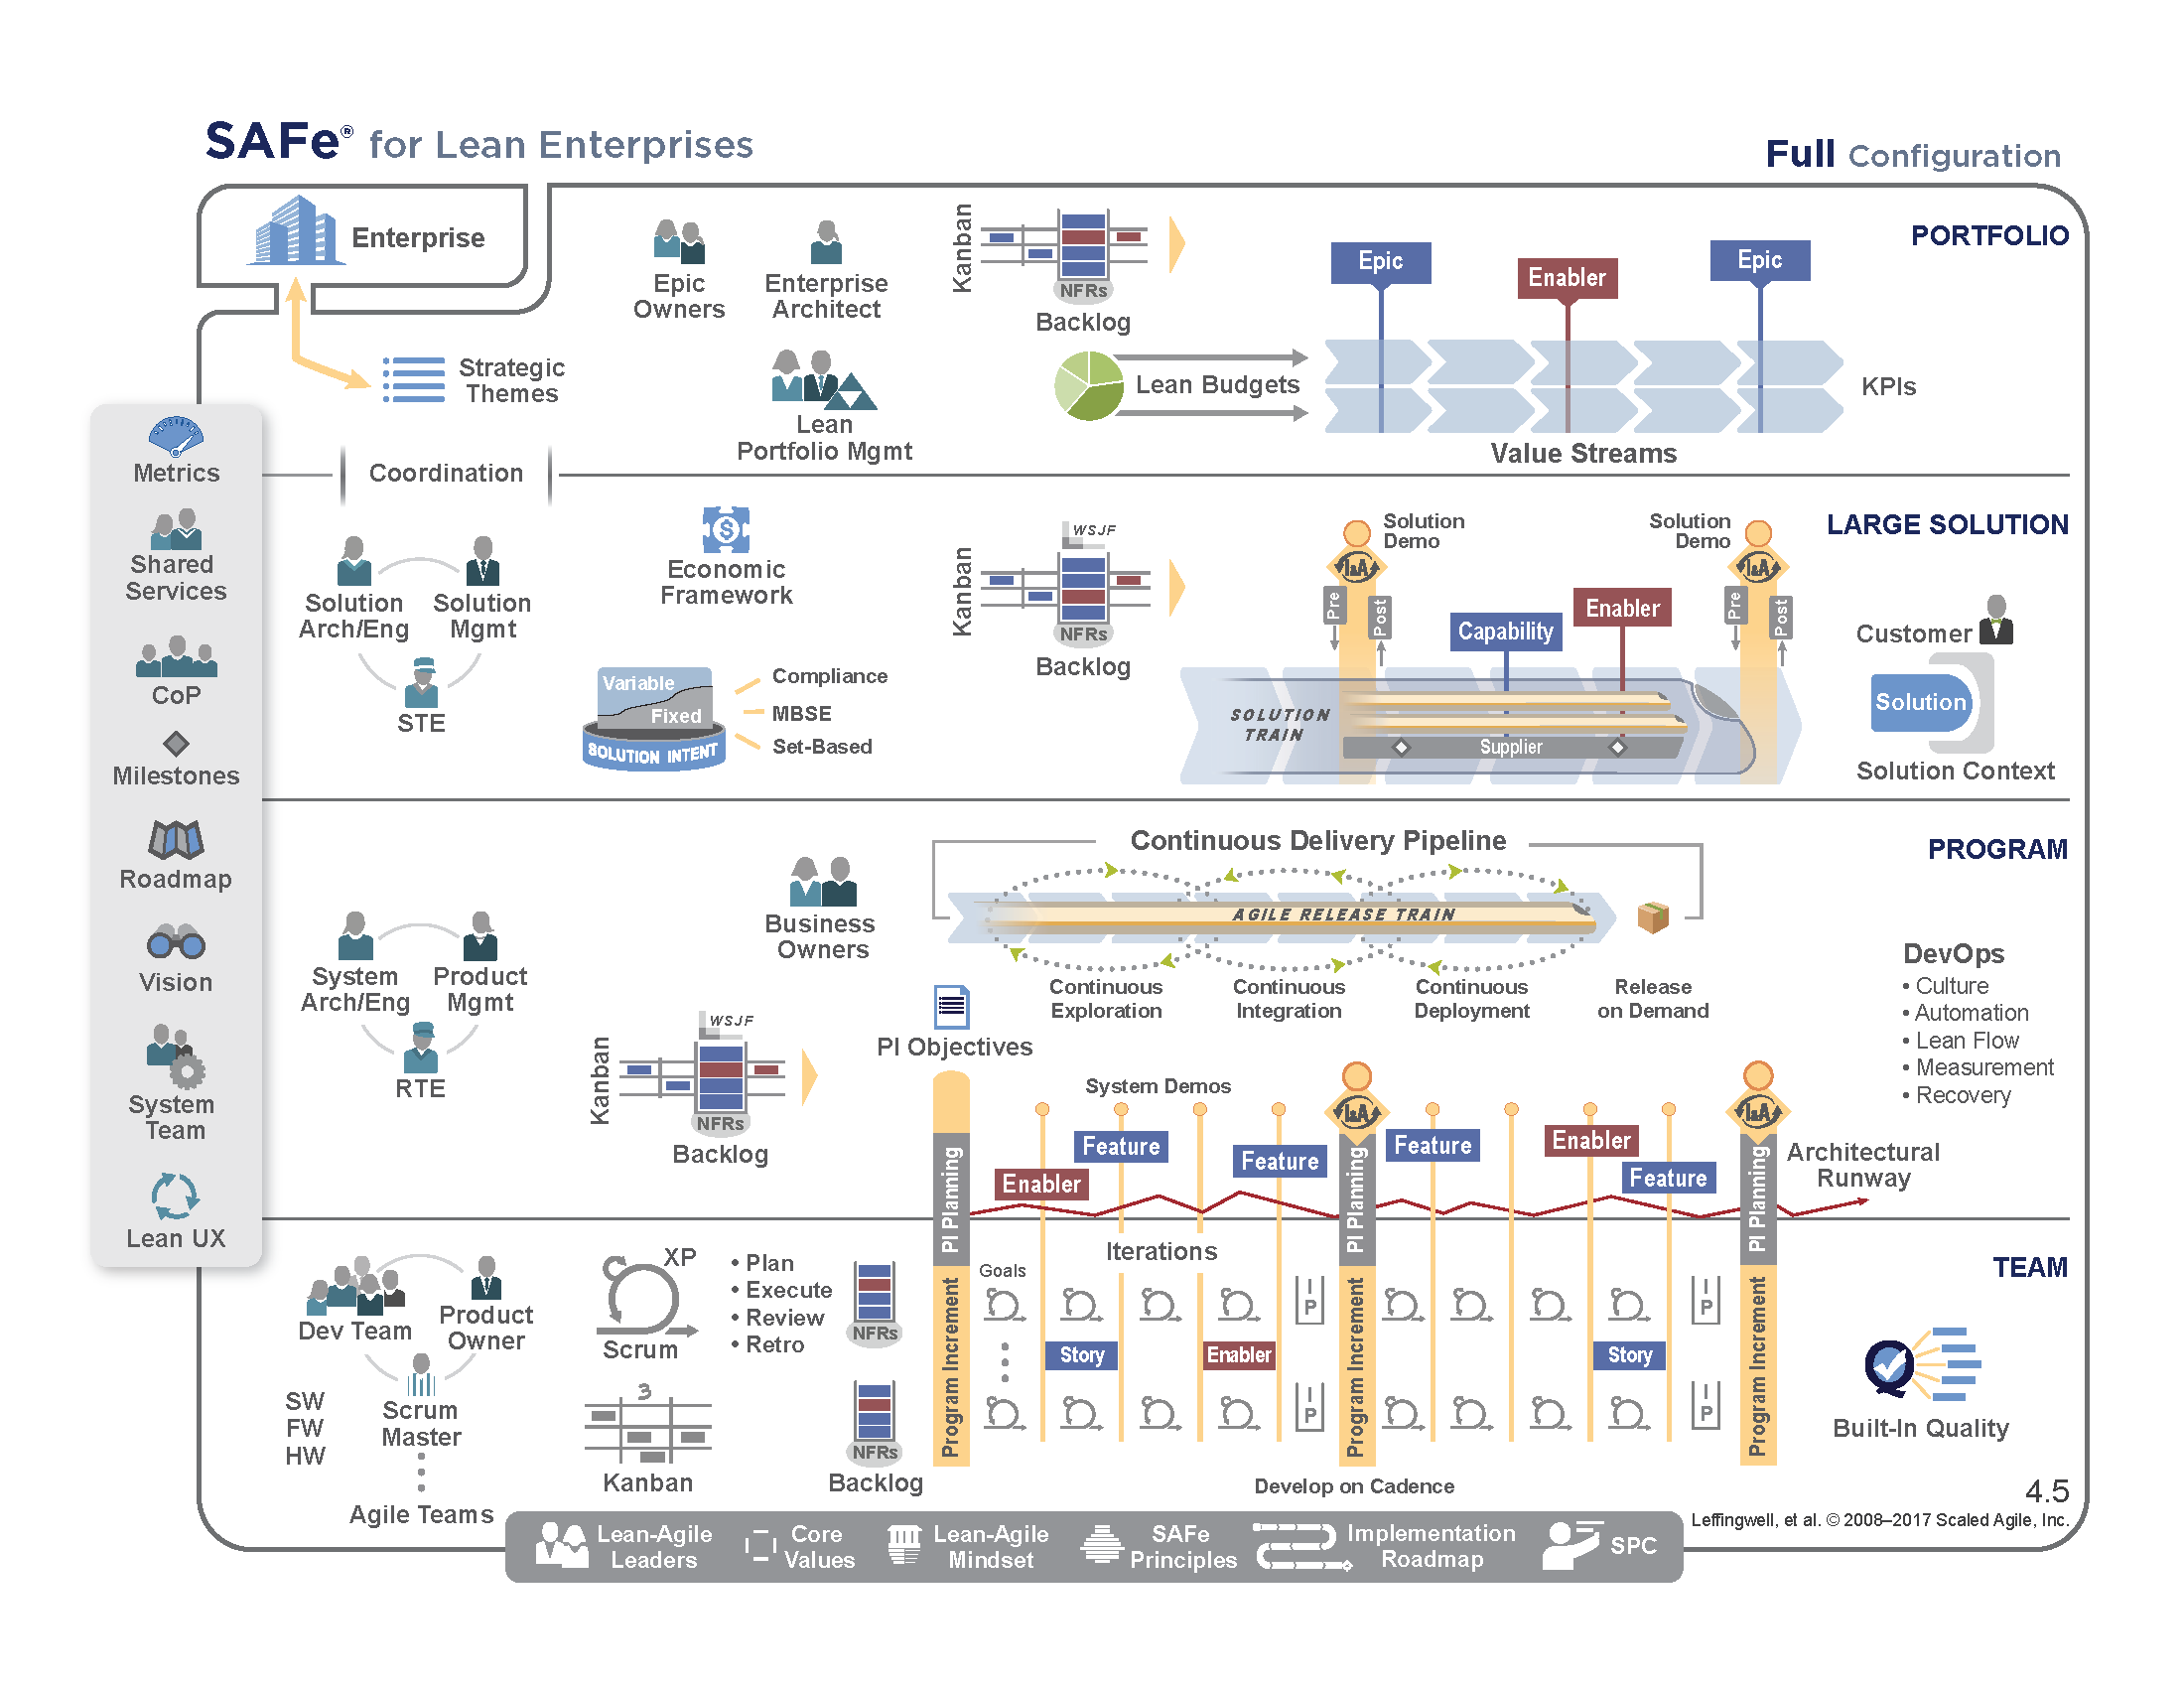 scaled-agile-framework-4-5-big-picture